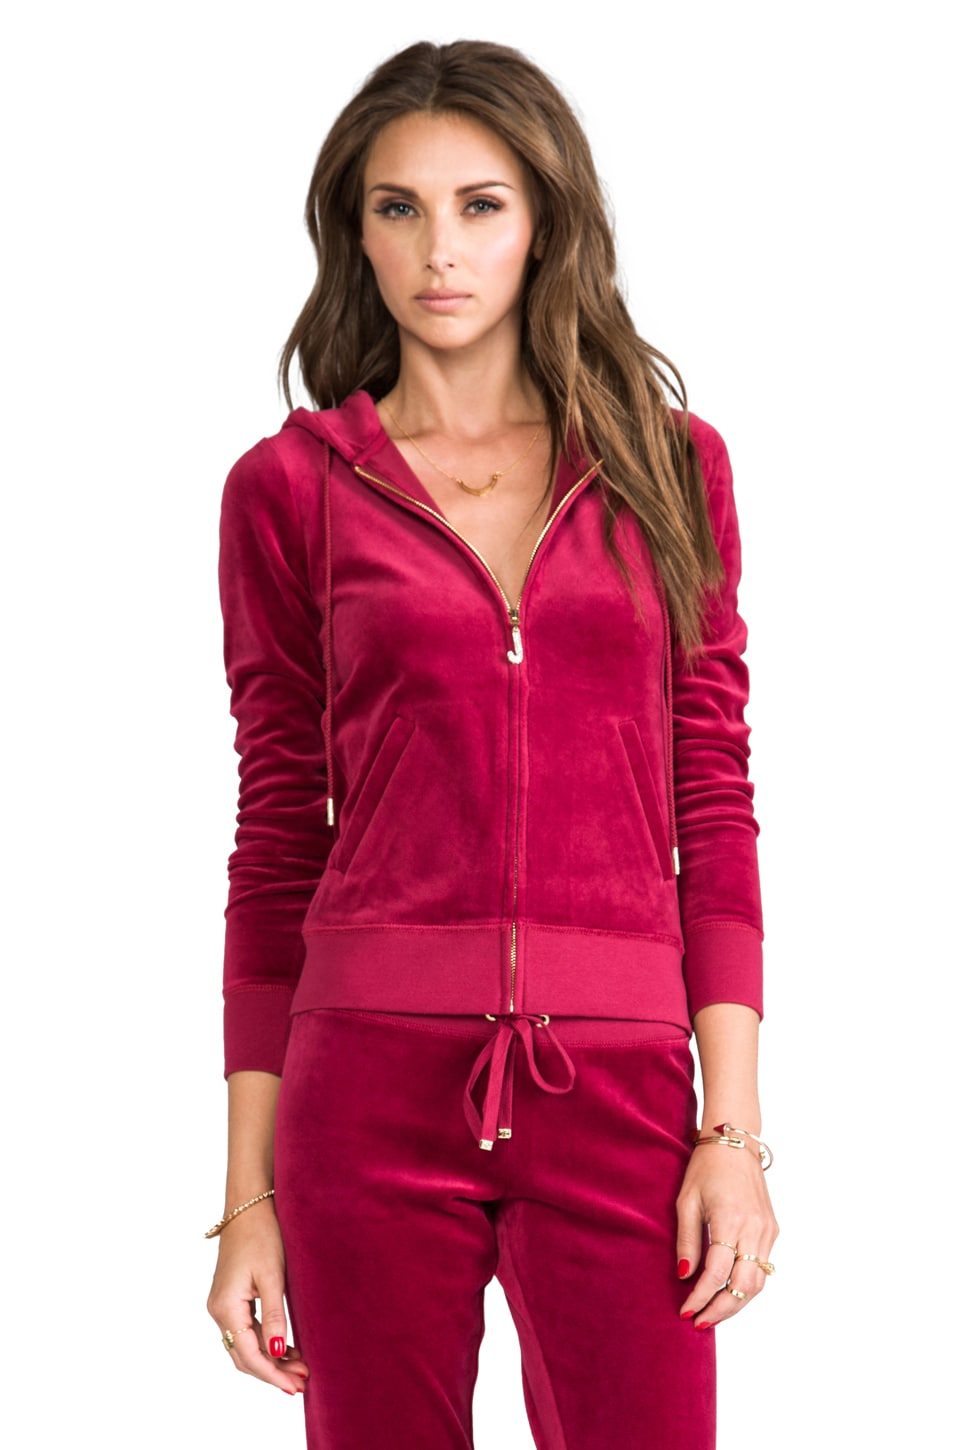 Juicy Couture J Bling Hoodie in Well-Coiffed